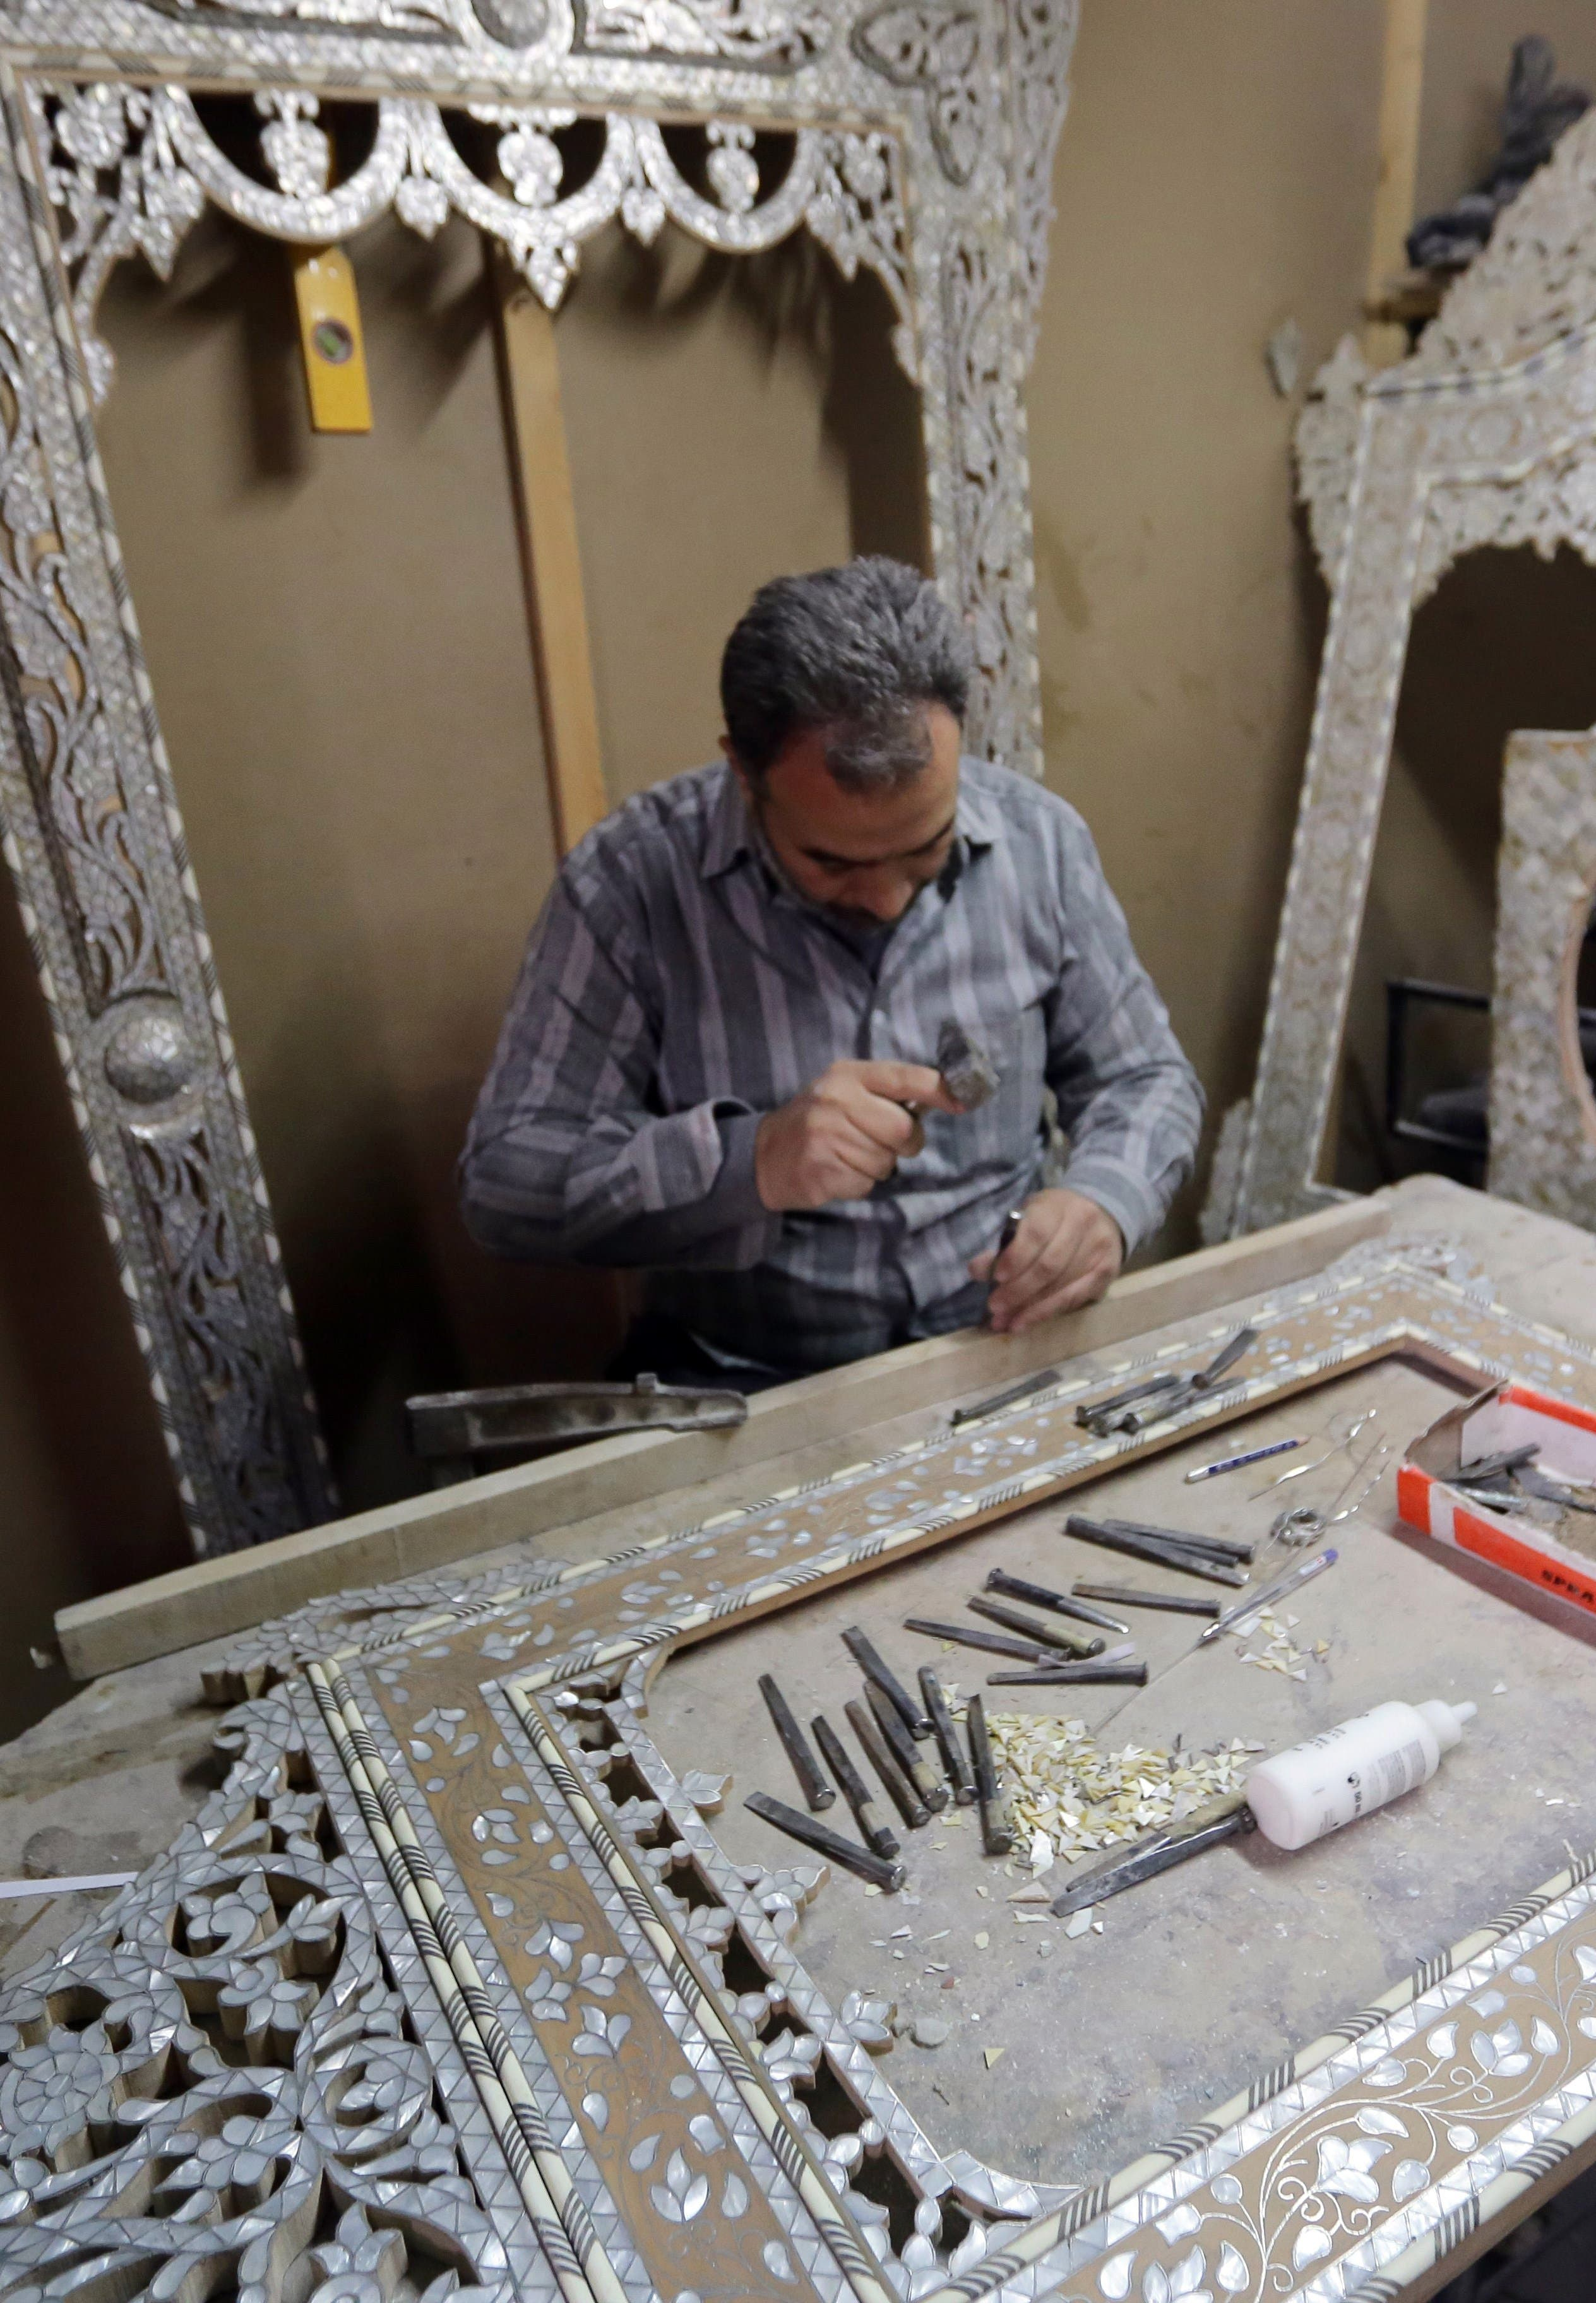 A Syrian artisan etches away at wooden panels inlaid with mother-of-pearl, at a workshop in the capital, Damascus, on December 1, 2015. AFP